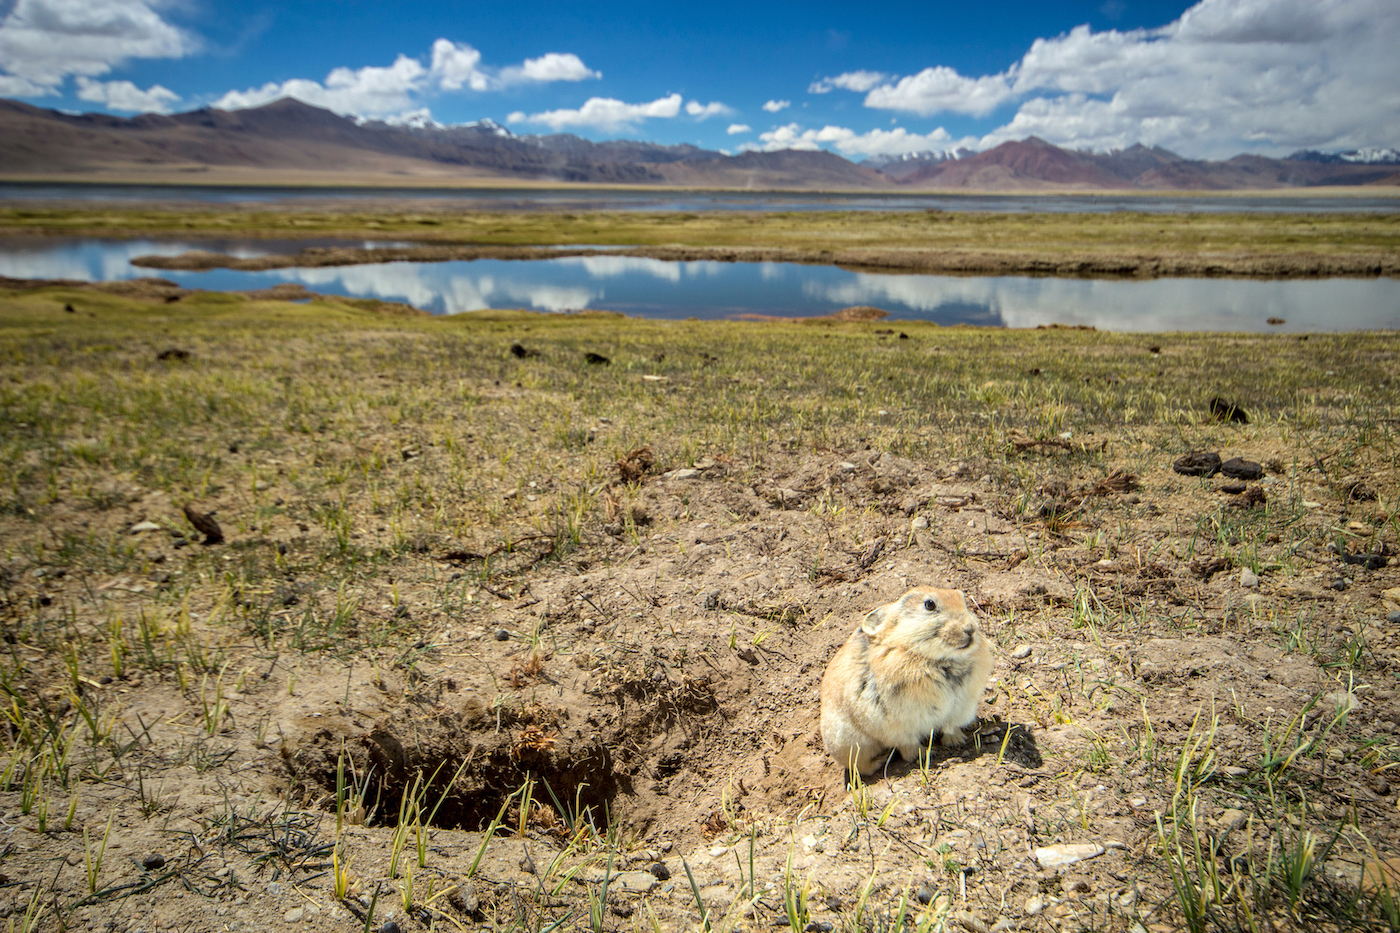 The Ladakh pika is a social animal that lives in family groups in burrows with multiple entrances. It is extremely alert and will scurry away into its burrow at the slightest sign of danger. Photo: Saurabh Sawant